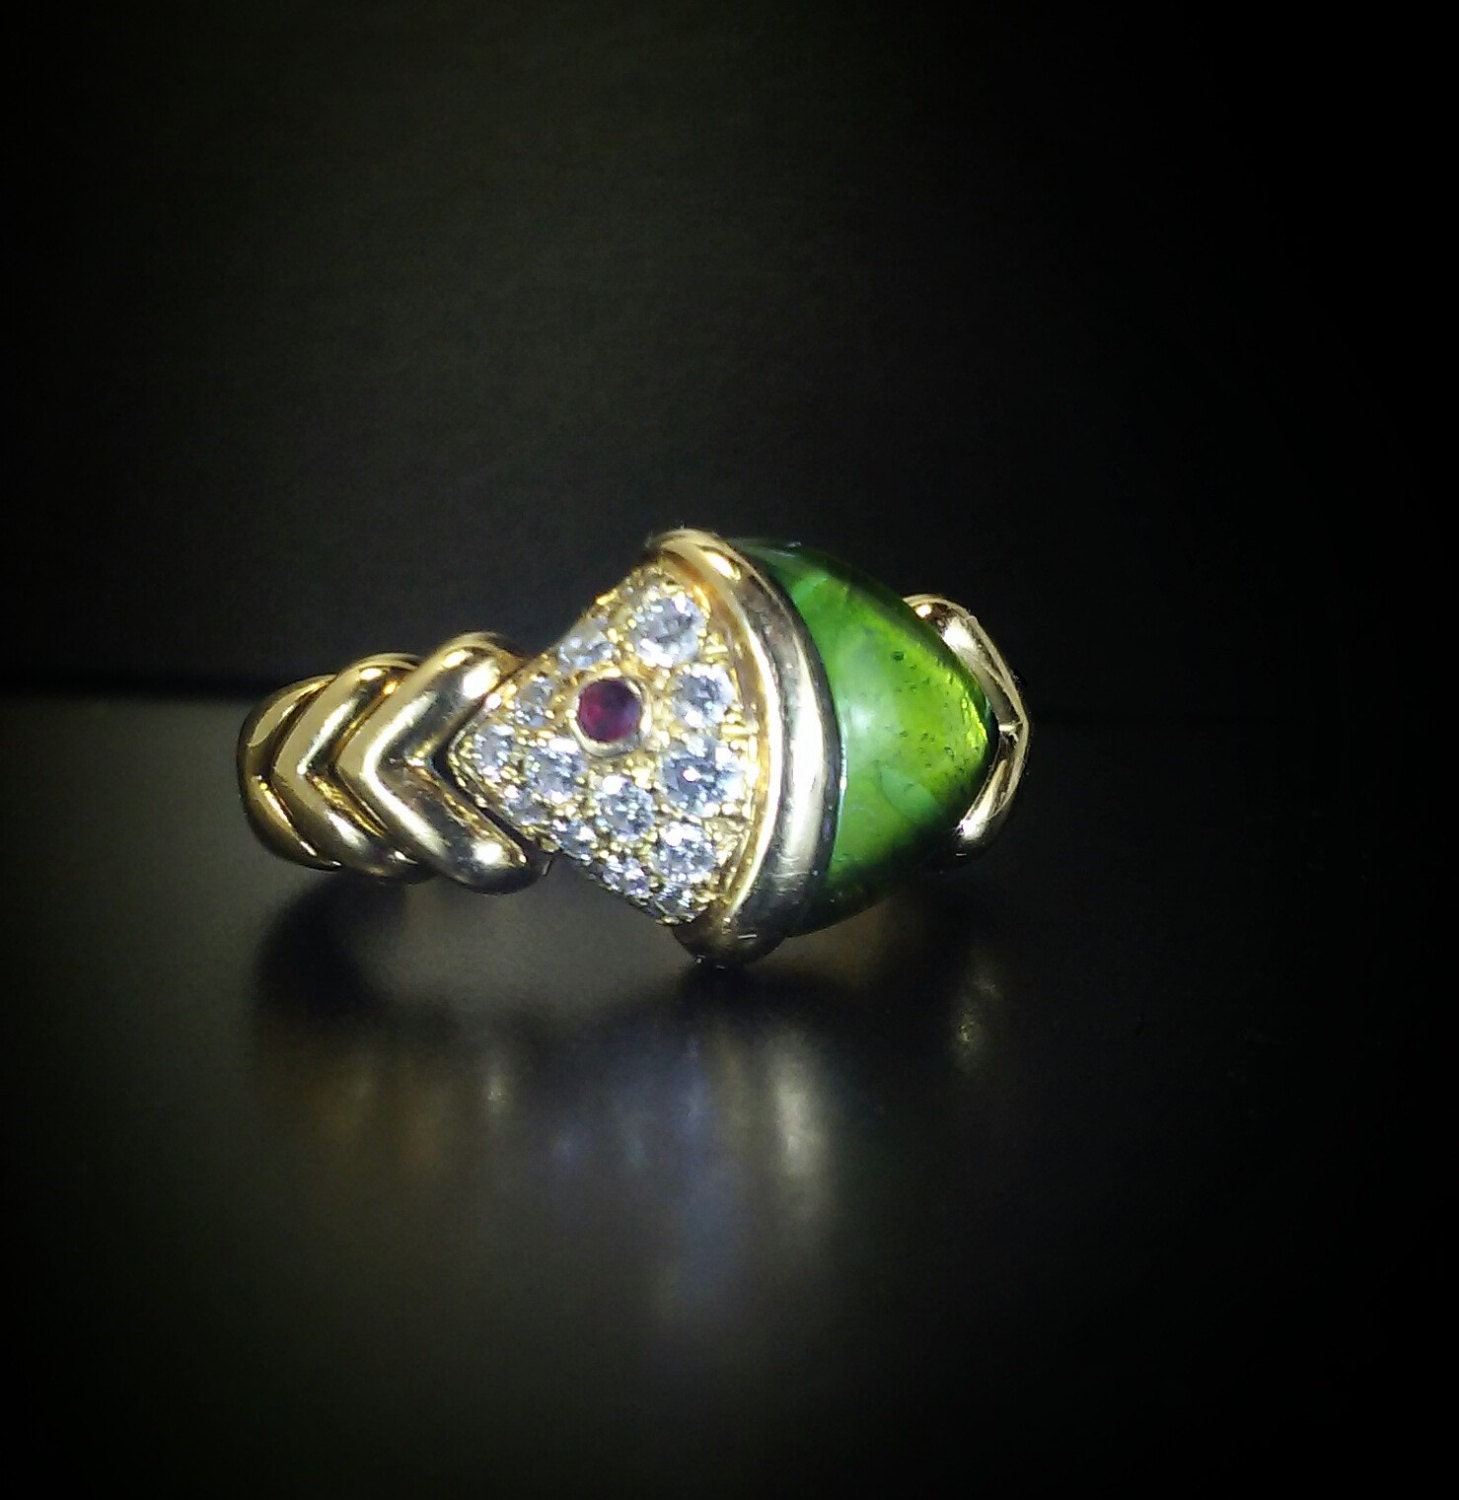 details this is an exquisite authentic signed bulgari designer naturalia fish ring